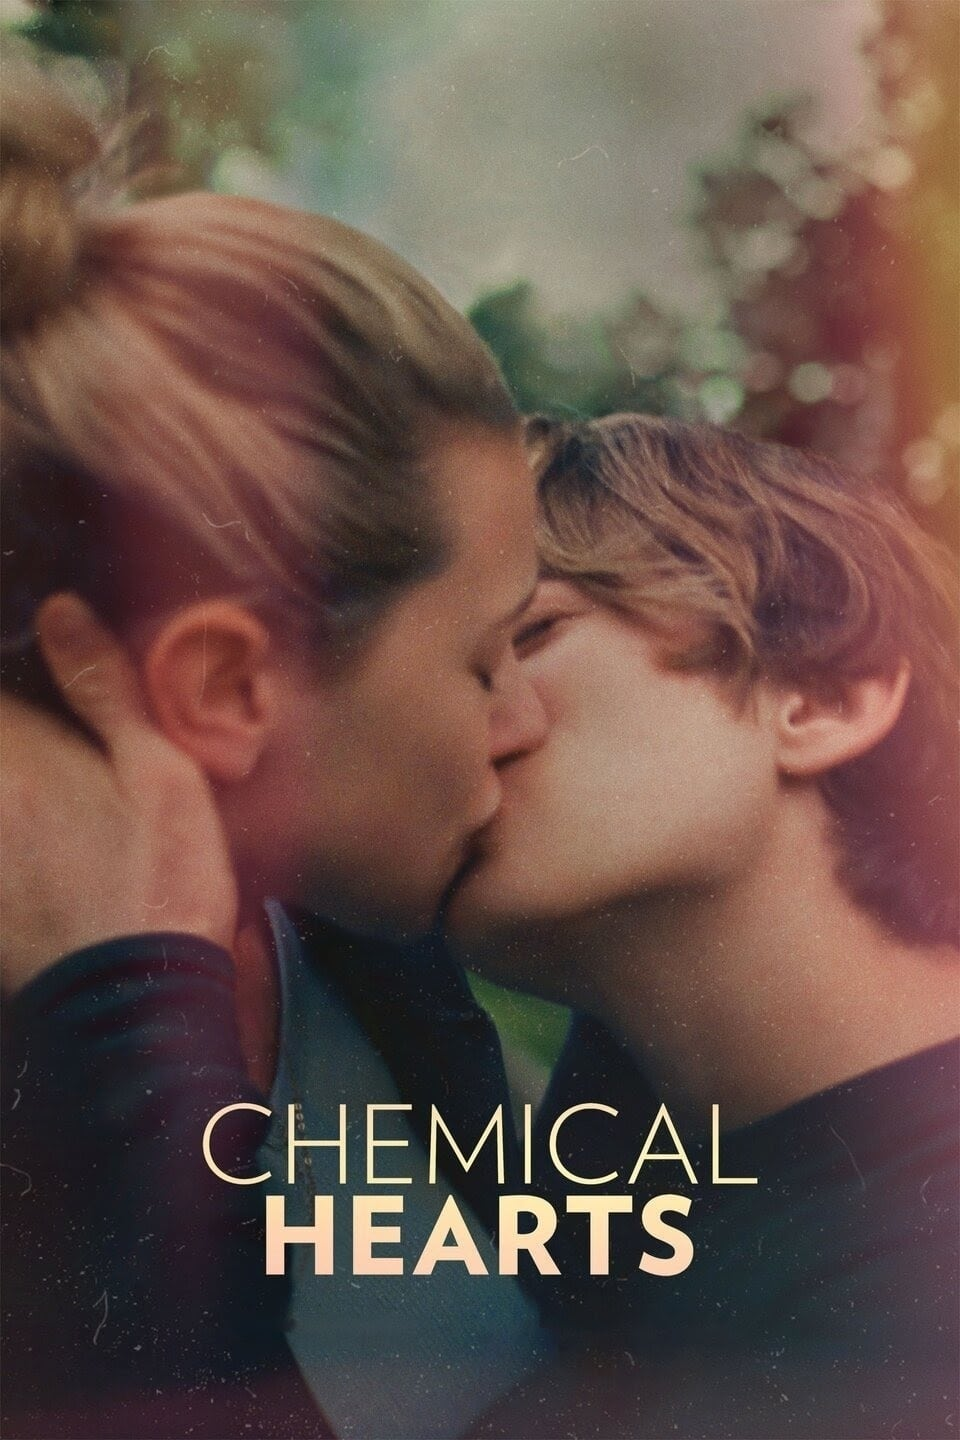 Chemical Hearts (2020) 1080p AMZN WEB-DL DDP5 1 H264-CMRG [5.65 GB] | G-Drive